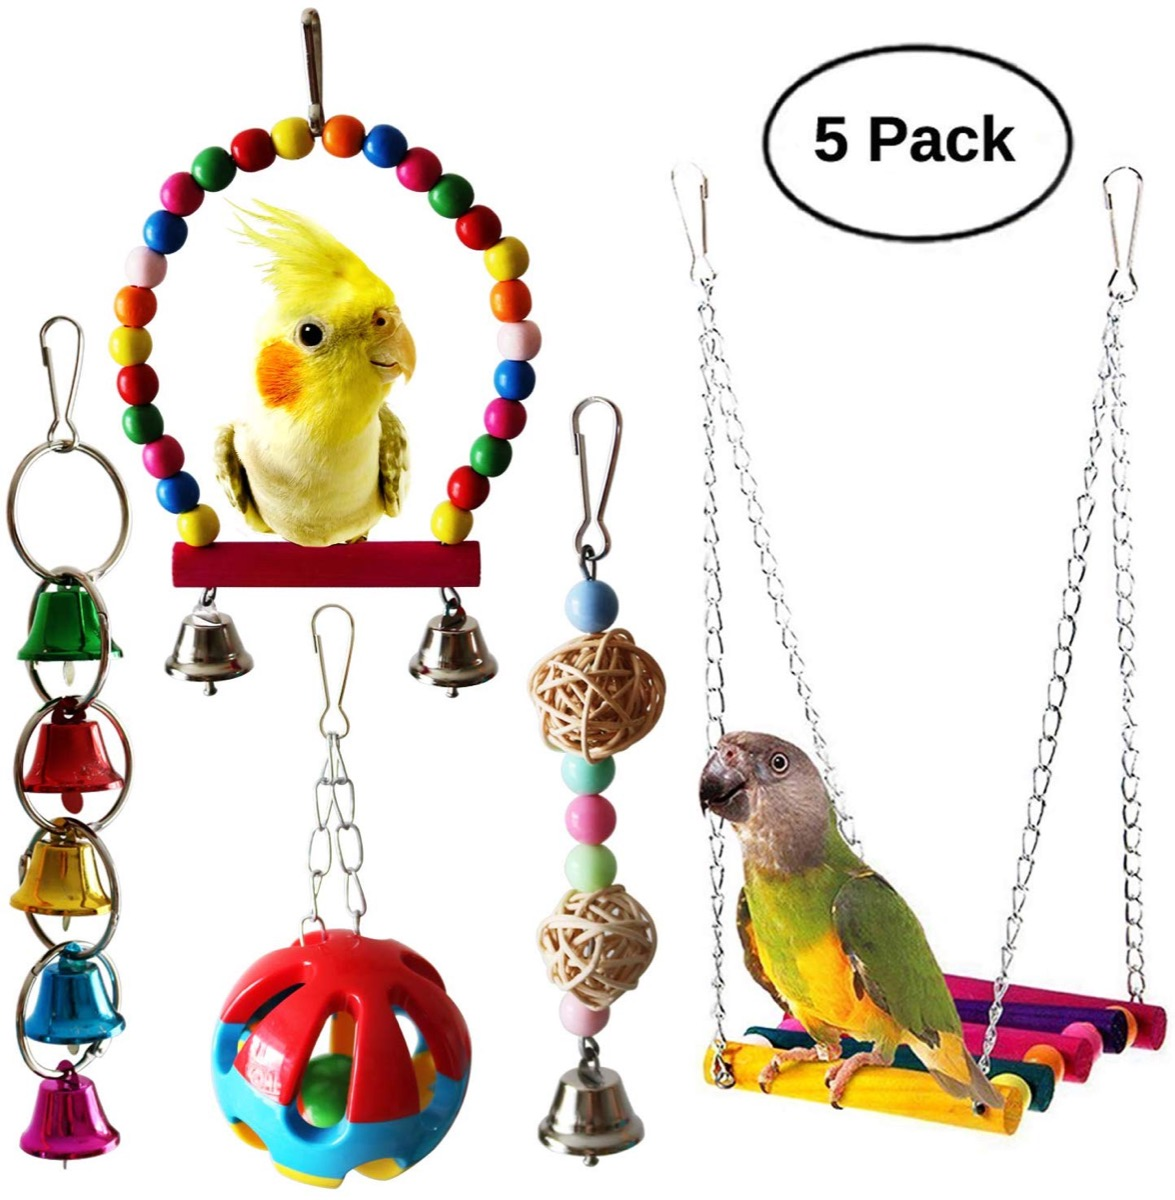 Bird toy and hammock set with parakeets